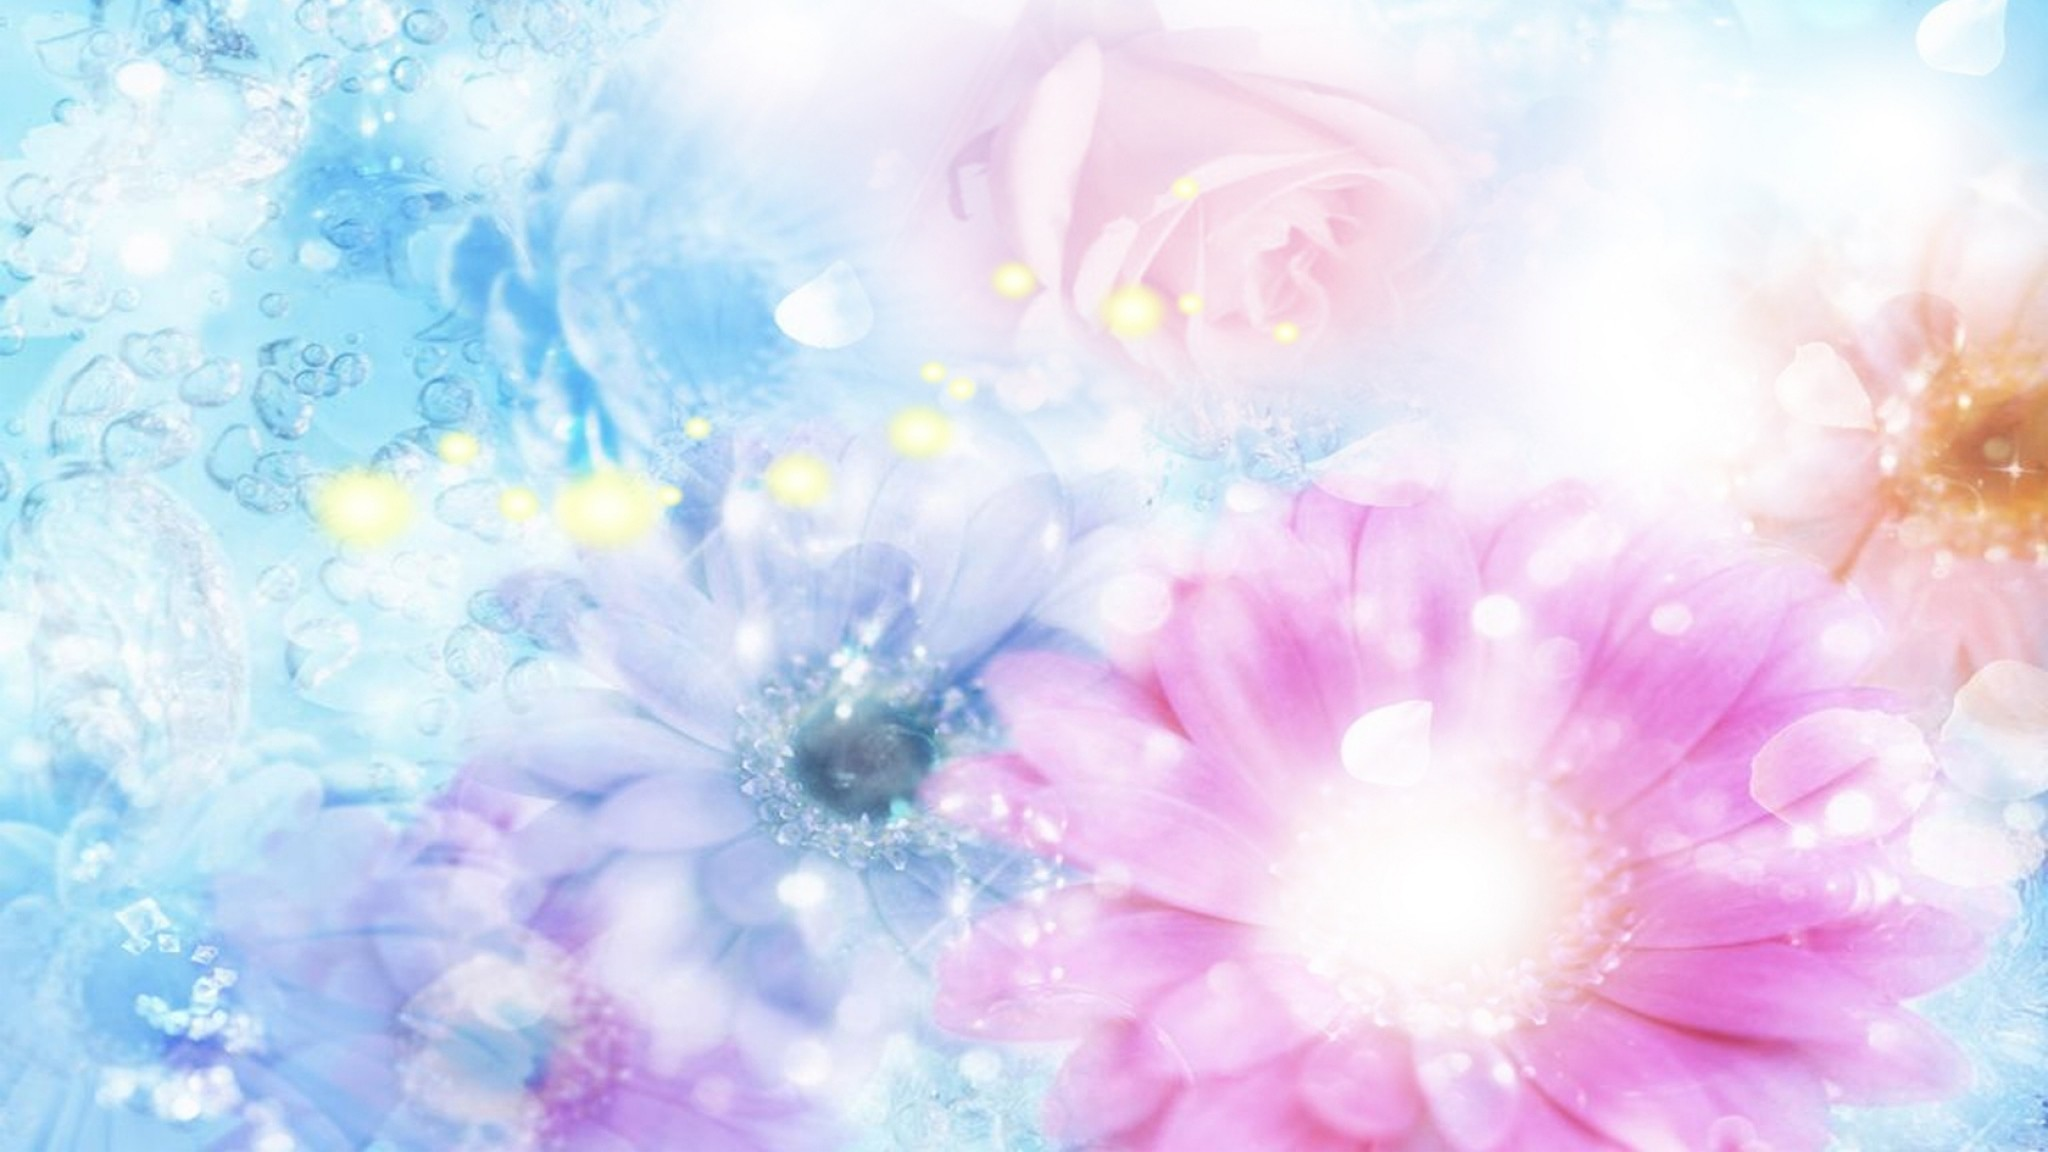 Preview wallpaper pink, blue, flowers, blurred, background, effects  2048×1152